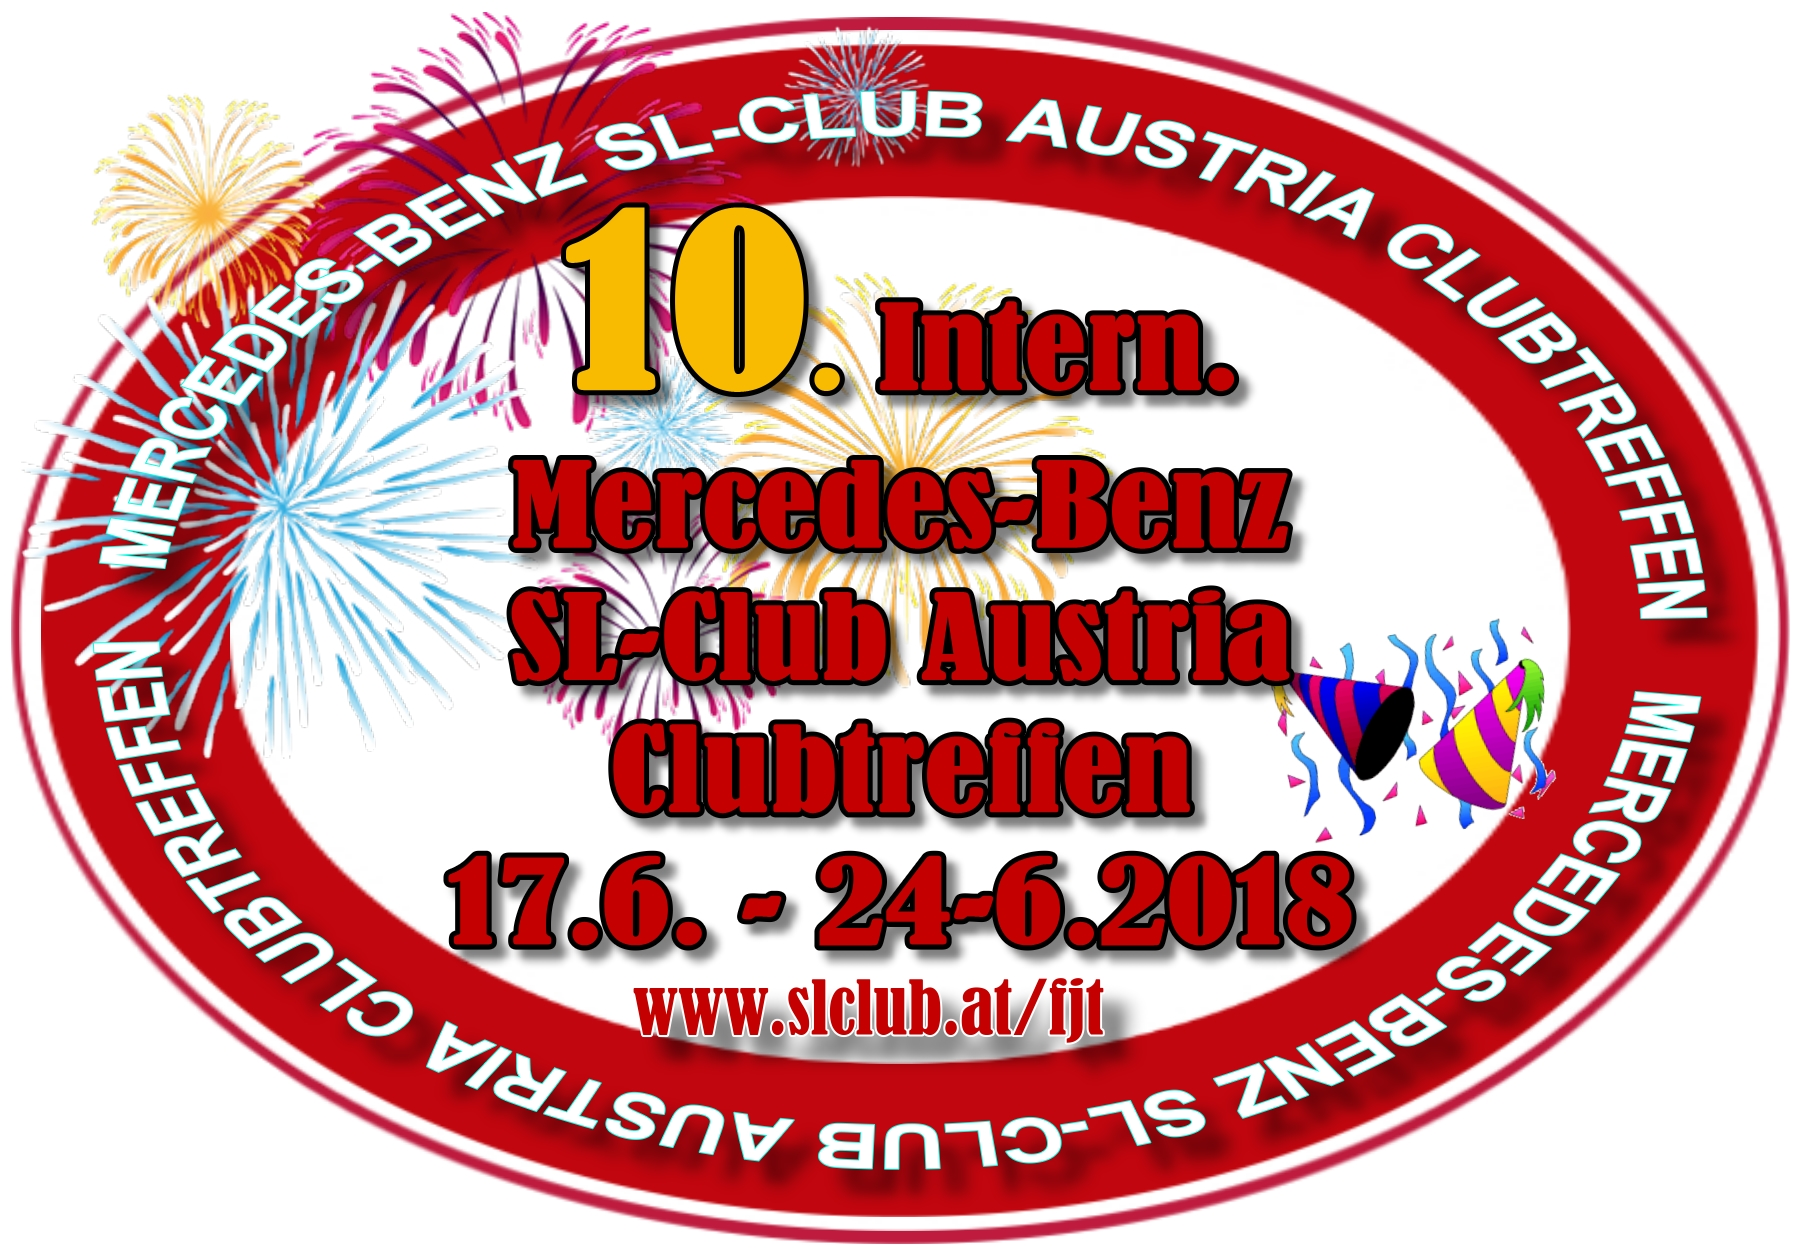 https://cdn1-cloud.mb-lounge.com/files/clubs/event/CLUBTREFFEN-logo-2018.jpg